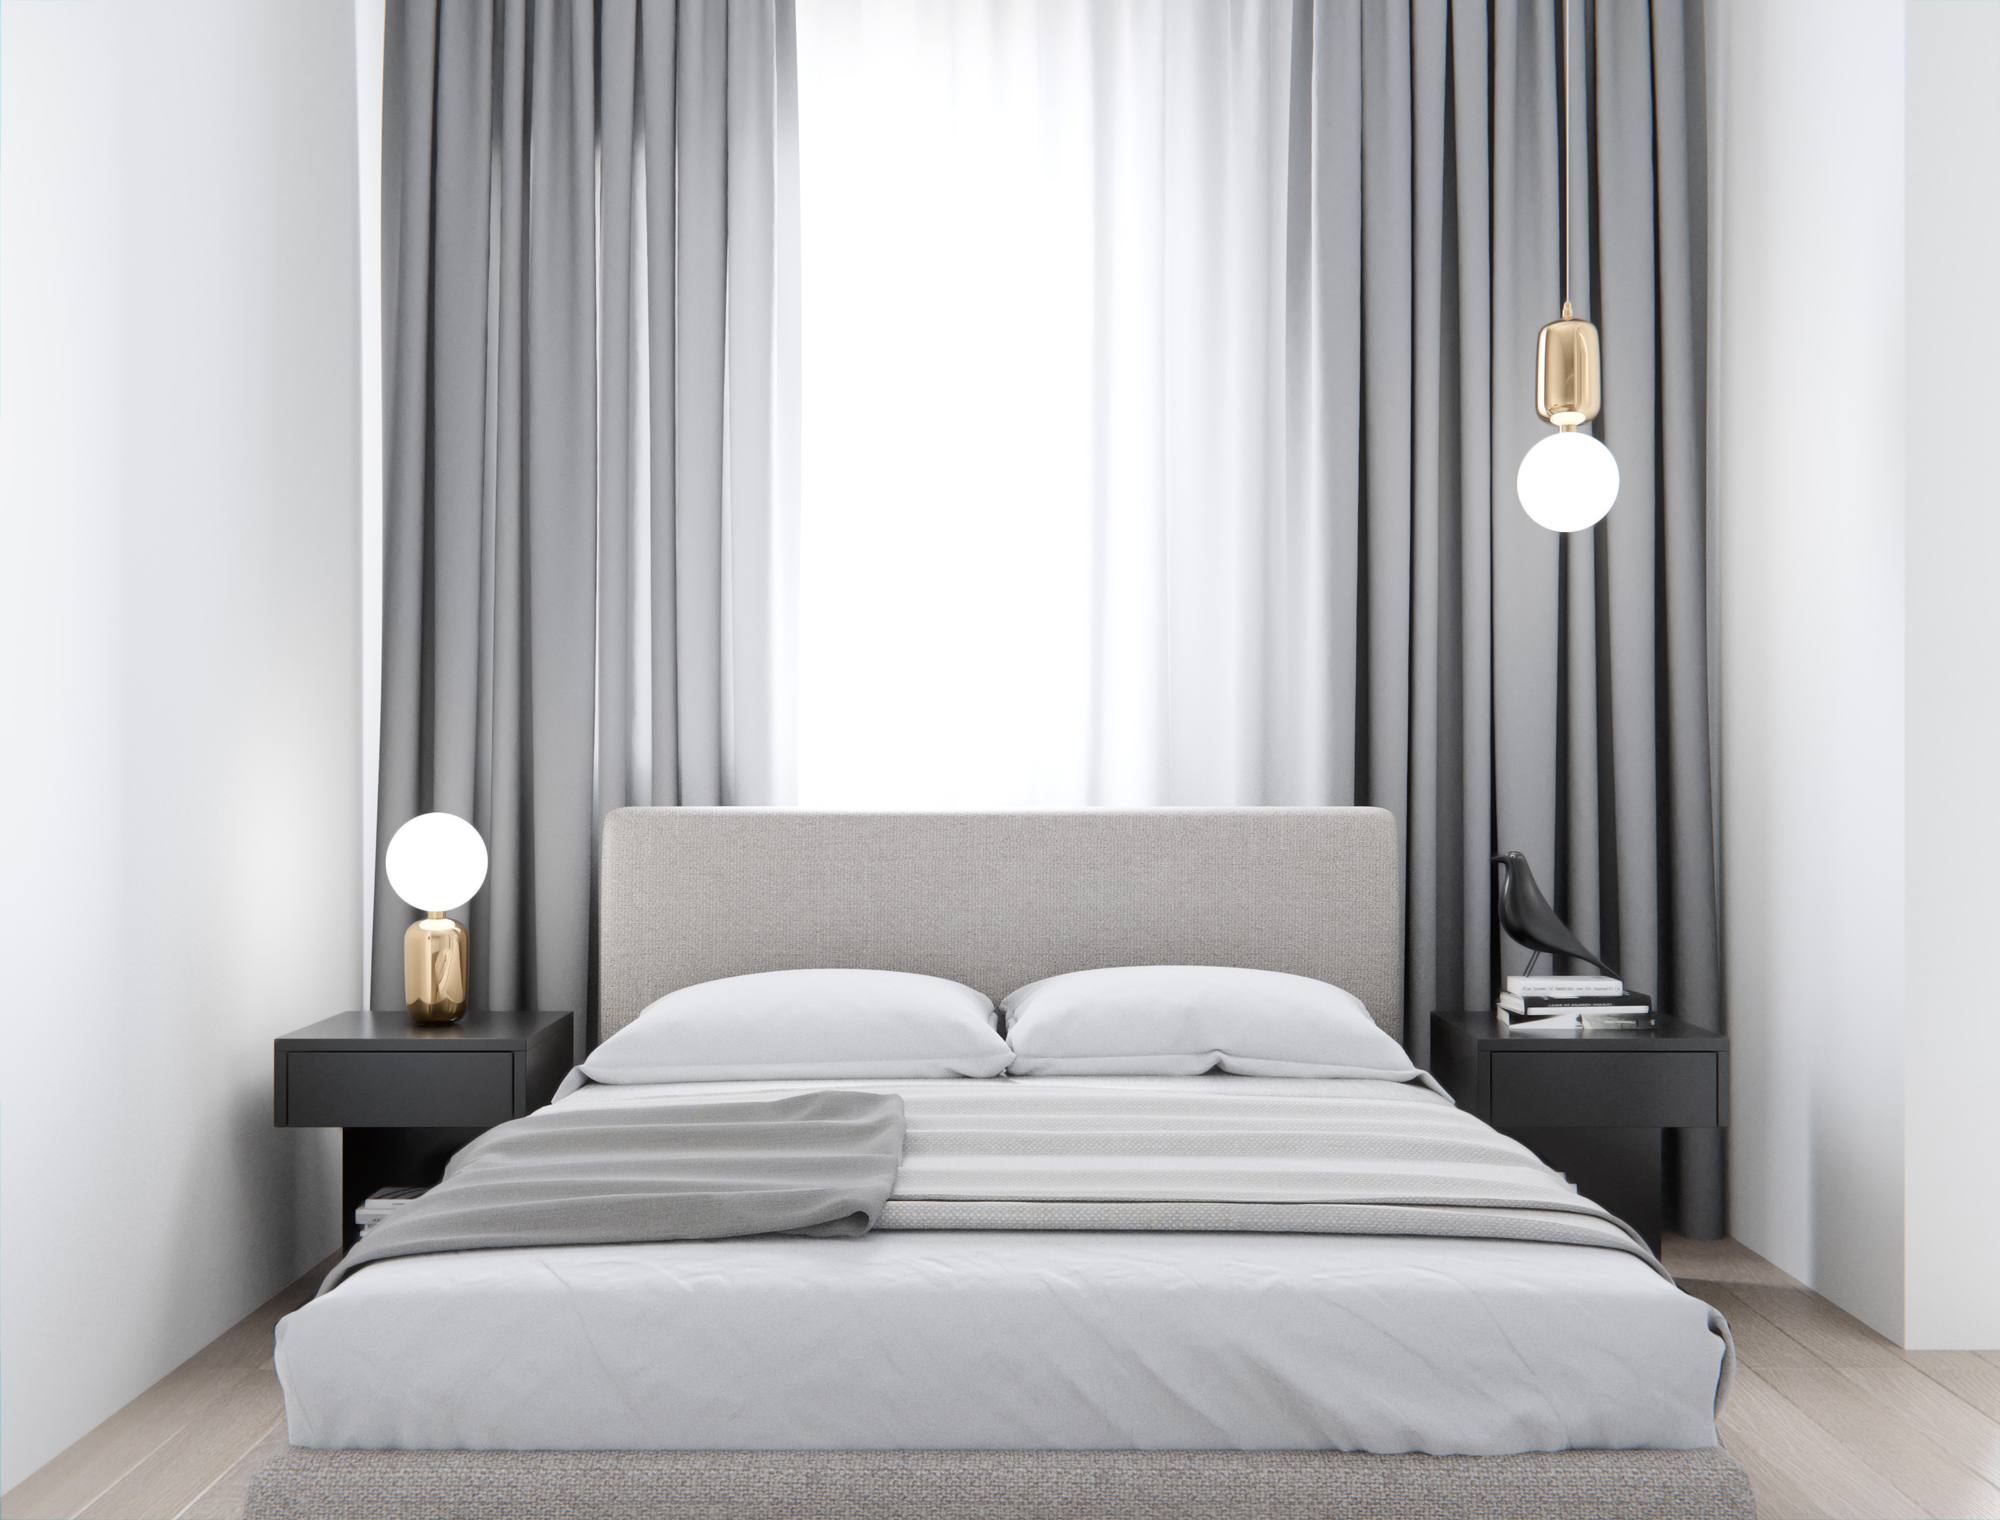 Bedroom Ideas 52 Modern Design Ideas For Your Bedroom The Luxpad in Modern Gray Bedroom Ideas